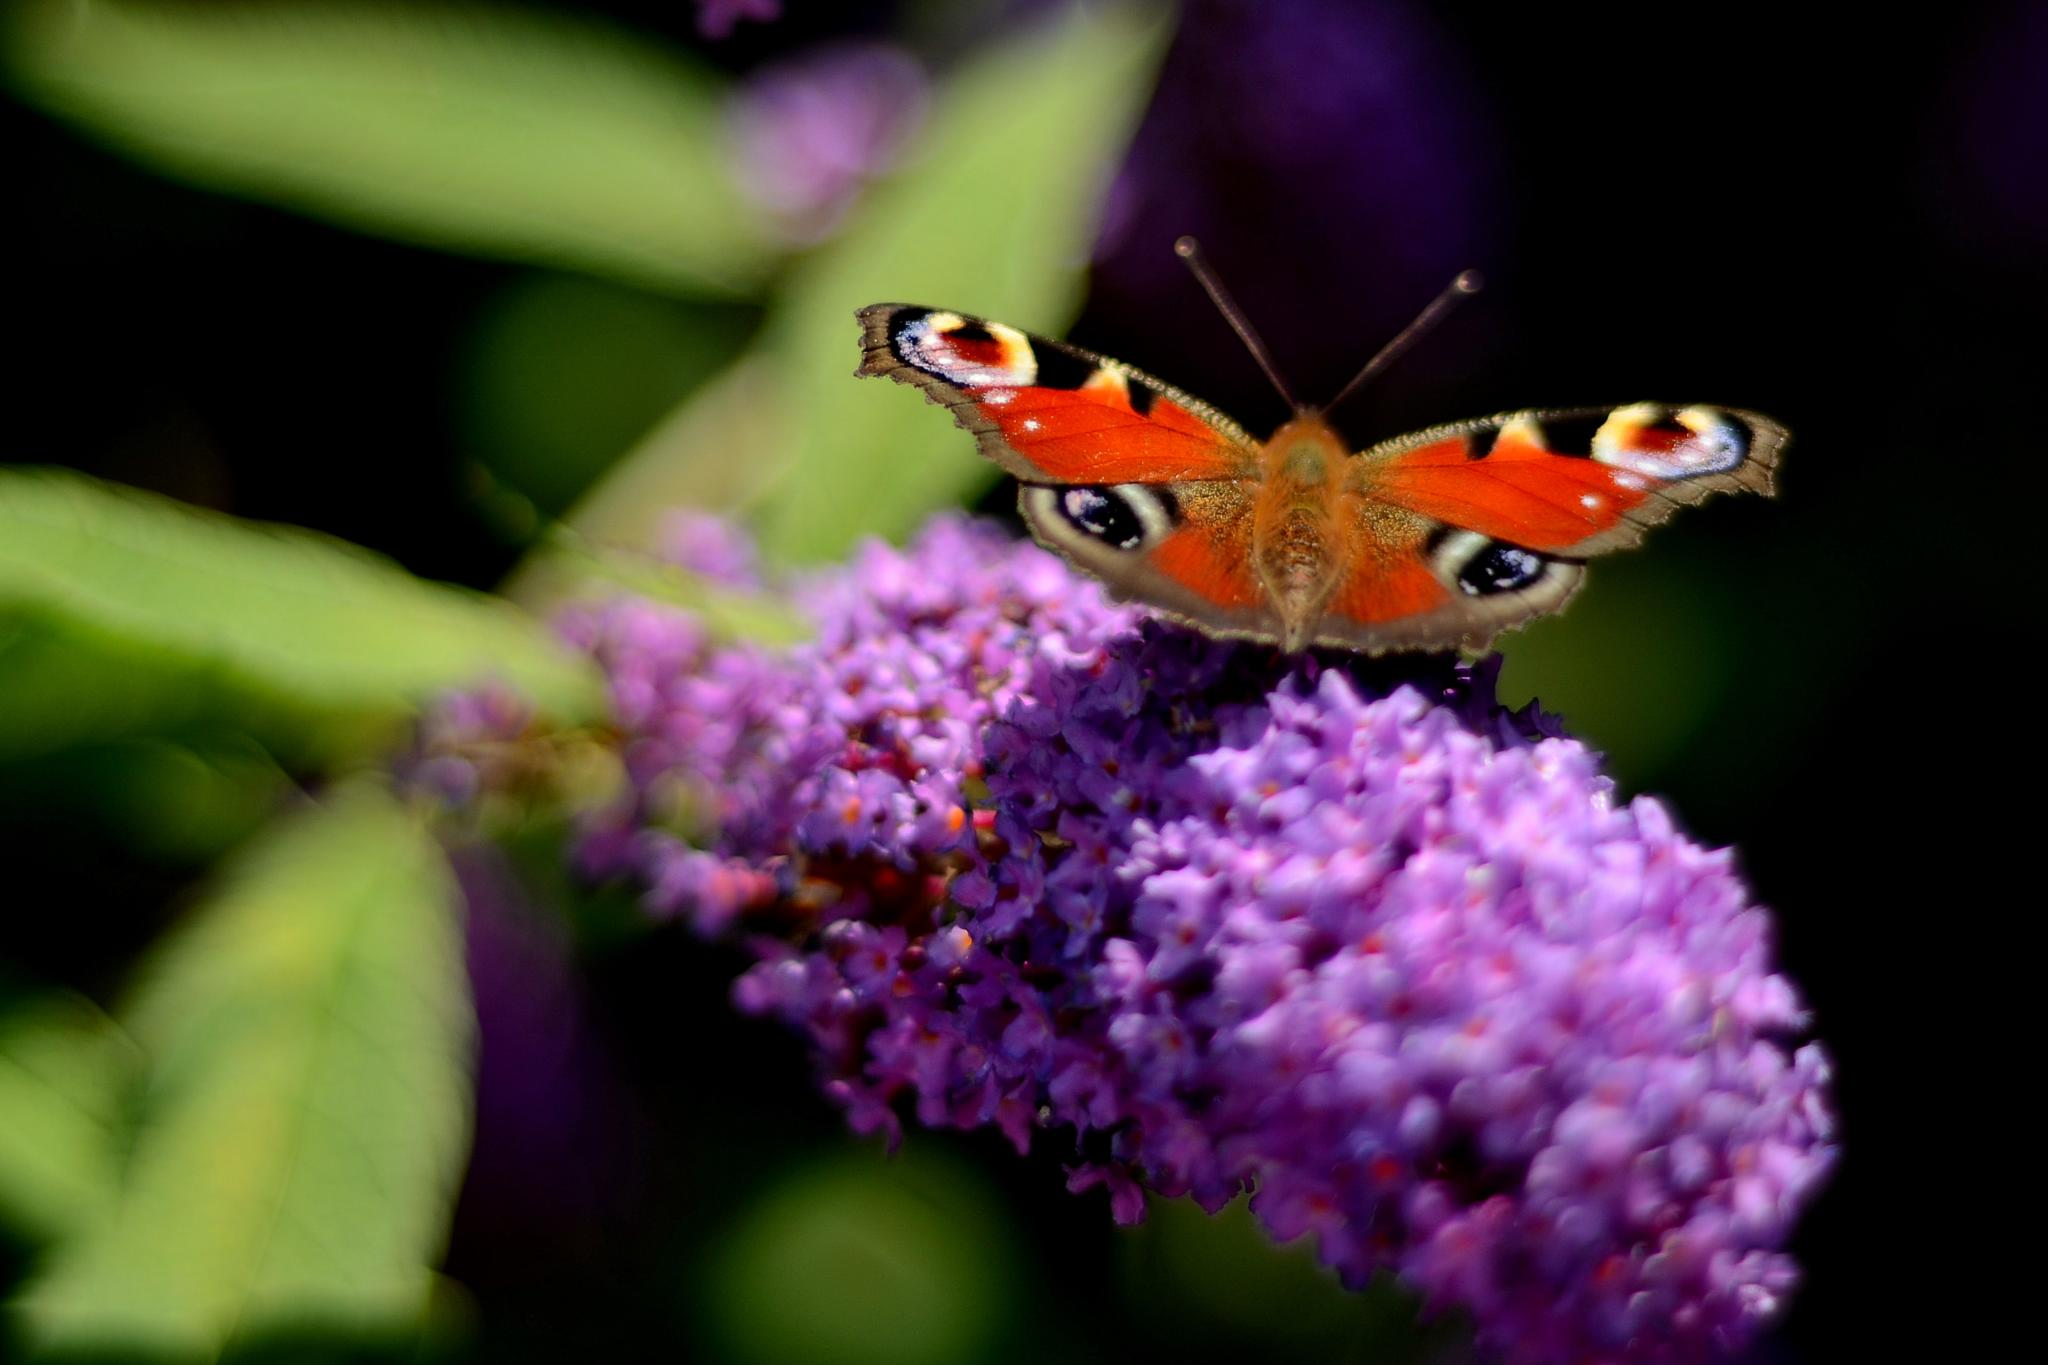 Butterfly on flower by Rick.Engbers.5